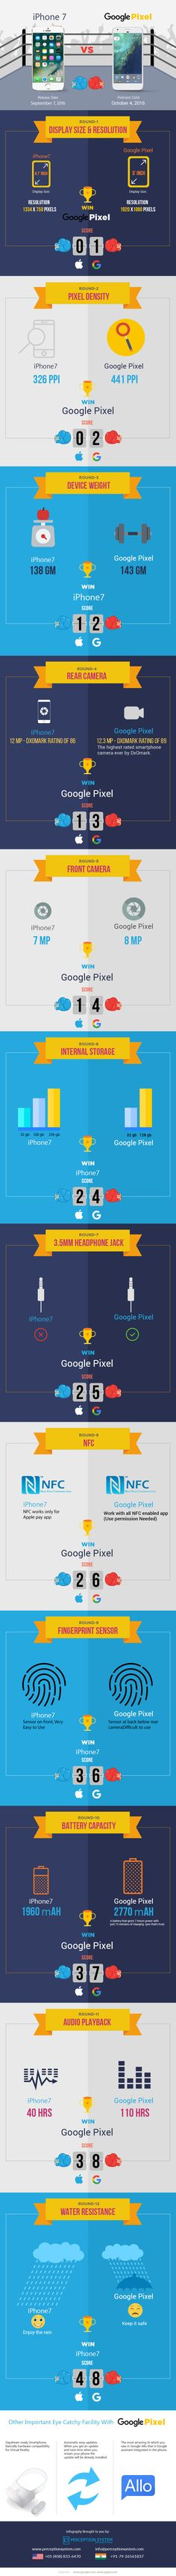 Google Pixel Vs iPhone 7 - Difference and Comparison #Infographic #Technology #Smartphones